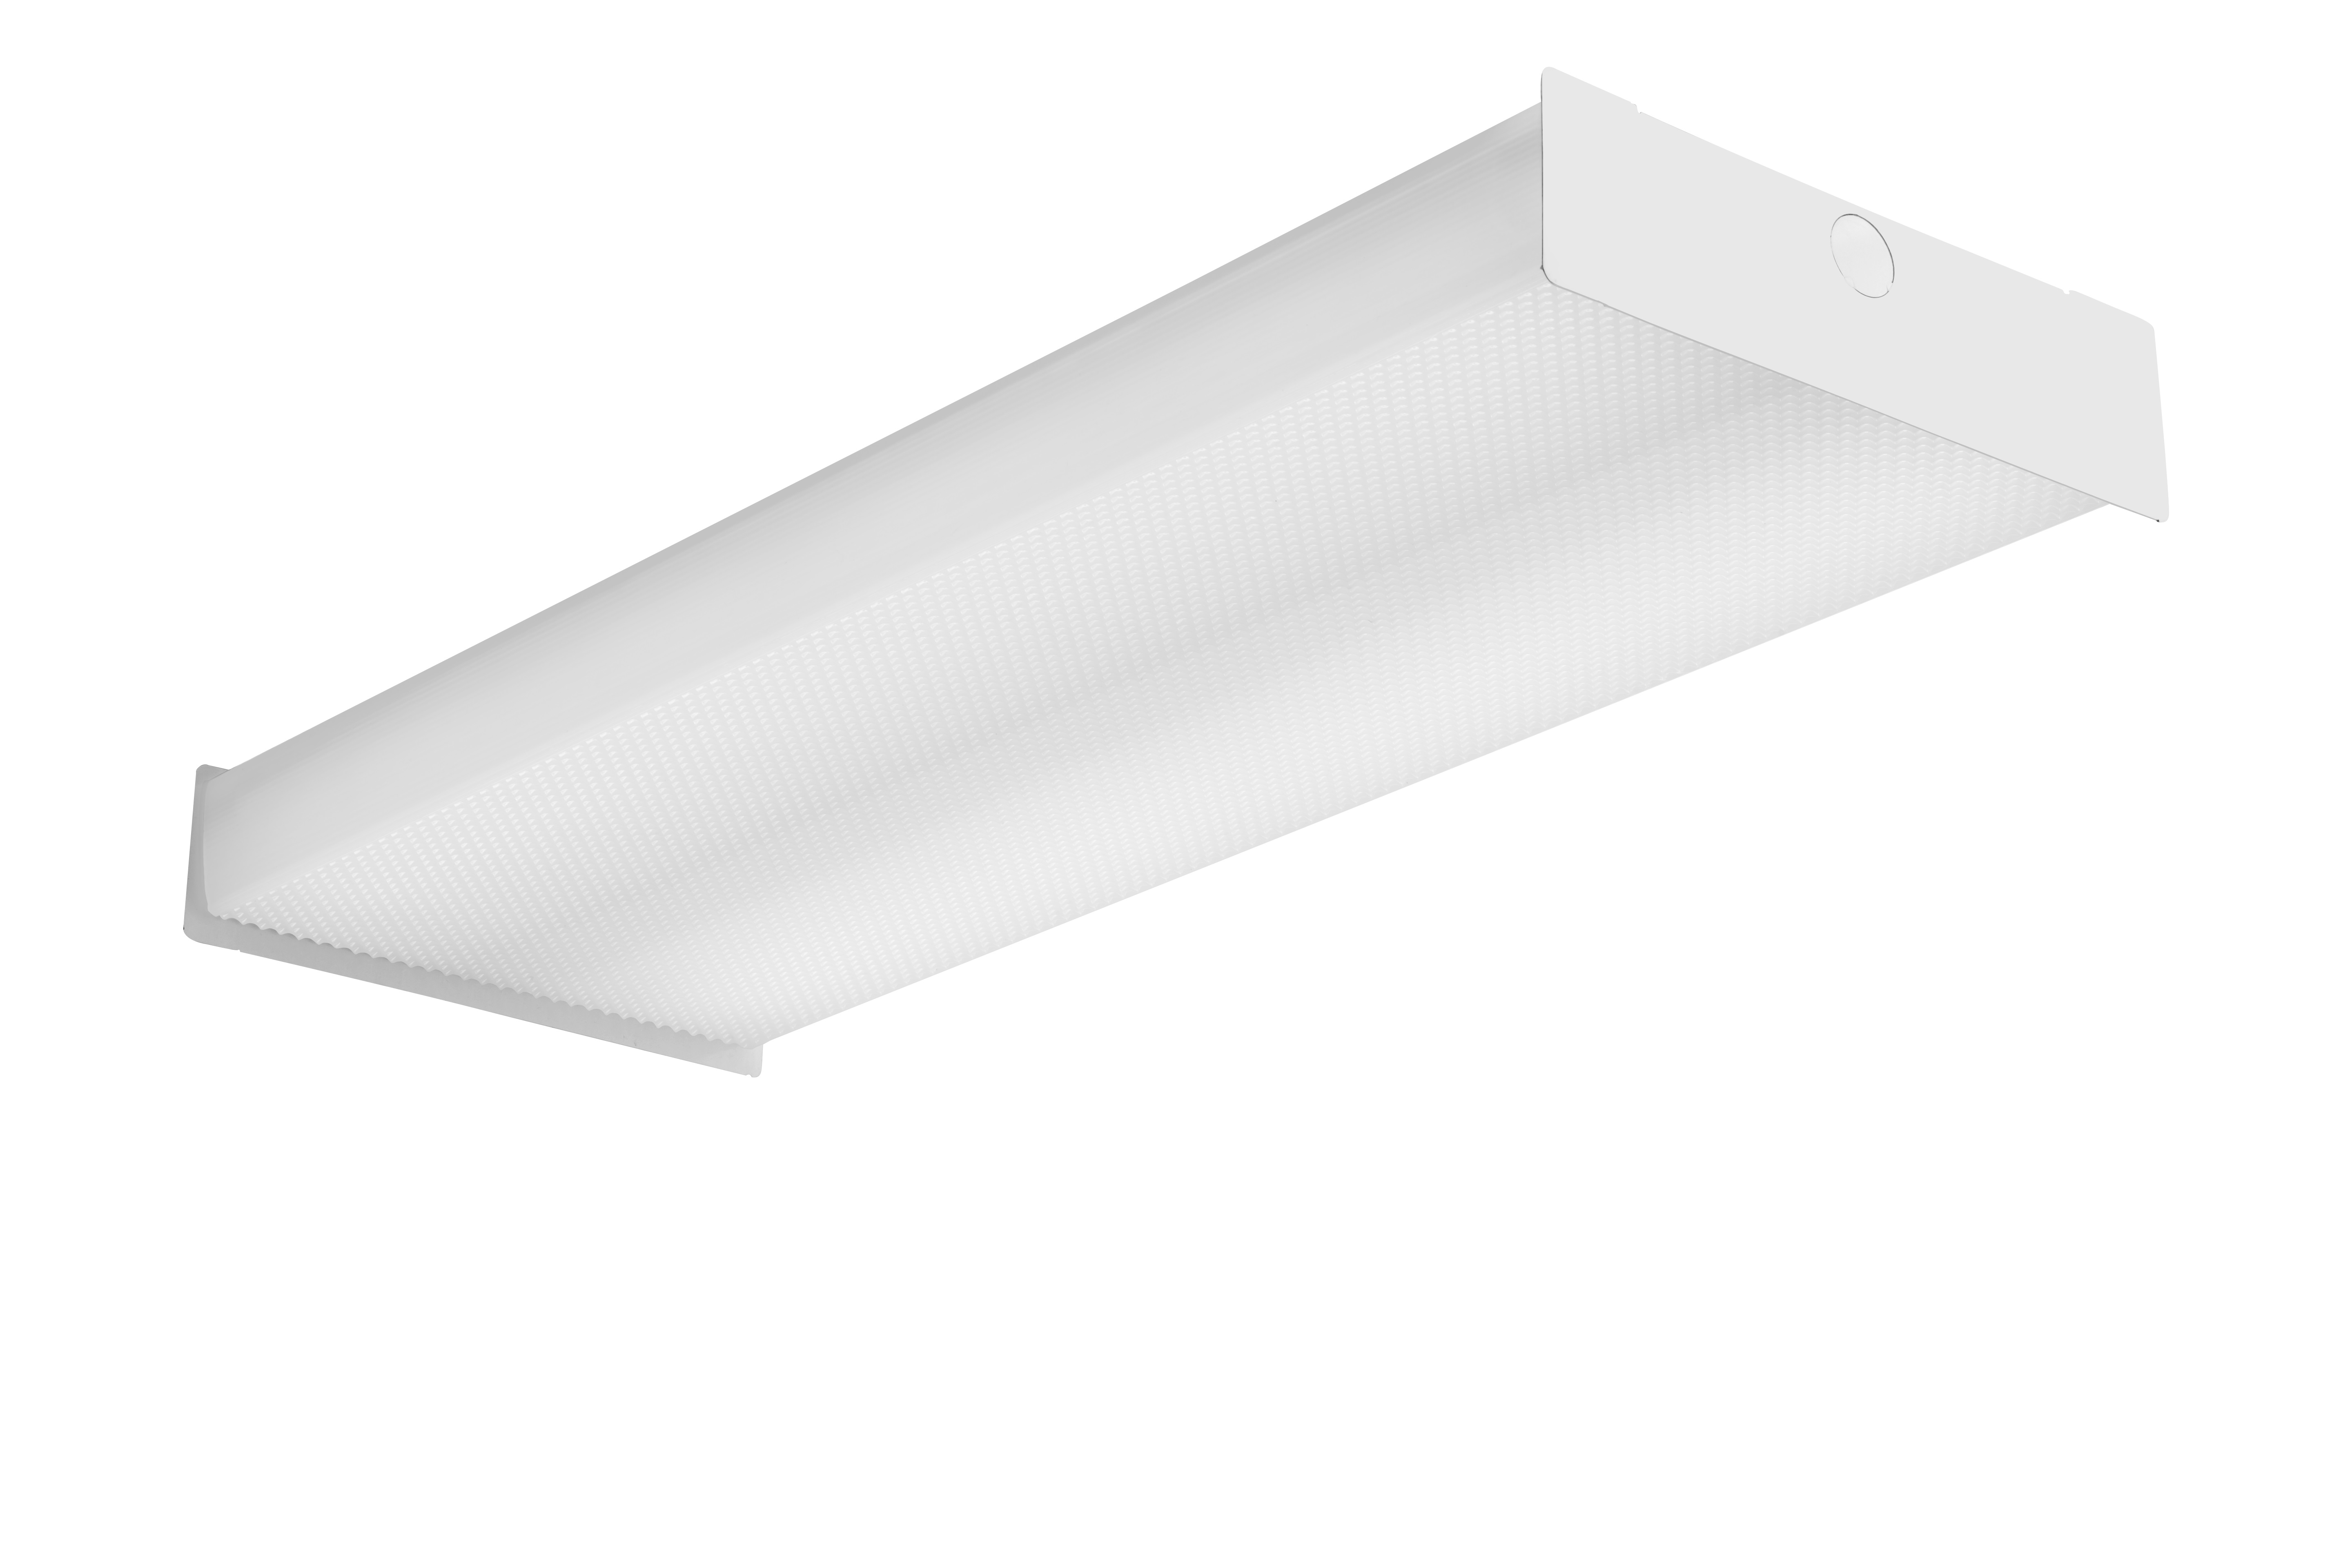 lit SBL2-LP835 LIT LED WRAP 2' 3500K 2409 LUMEN 0-10V DIMMING